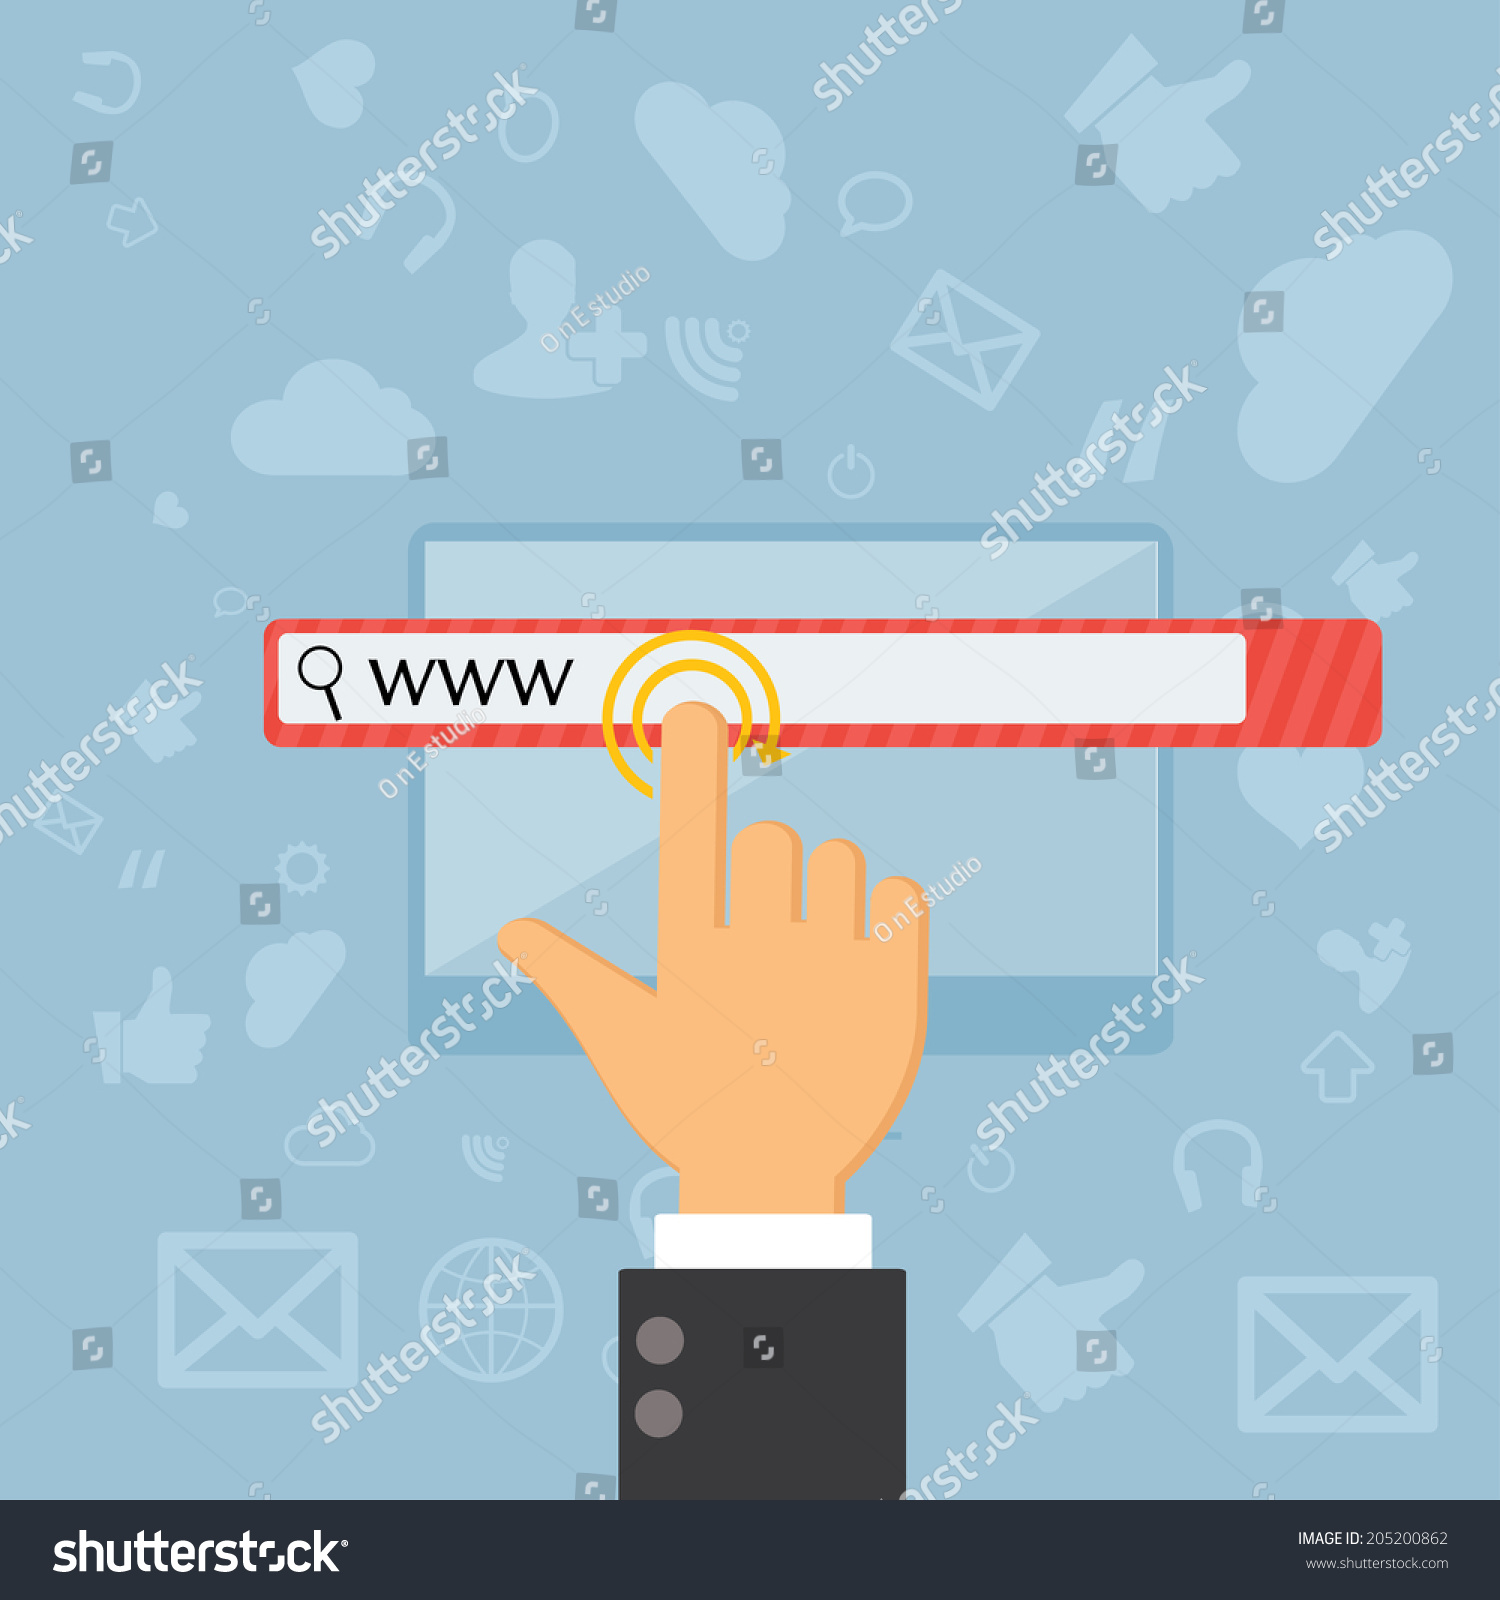 How to Insert IP Addresses in a Browser